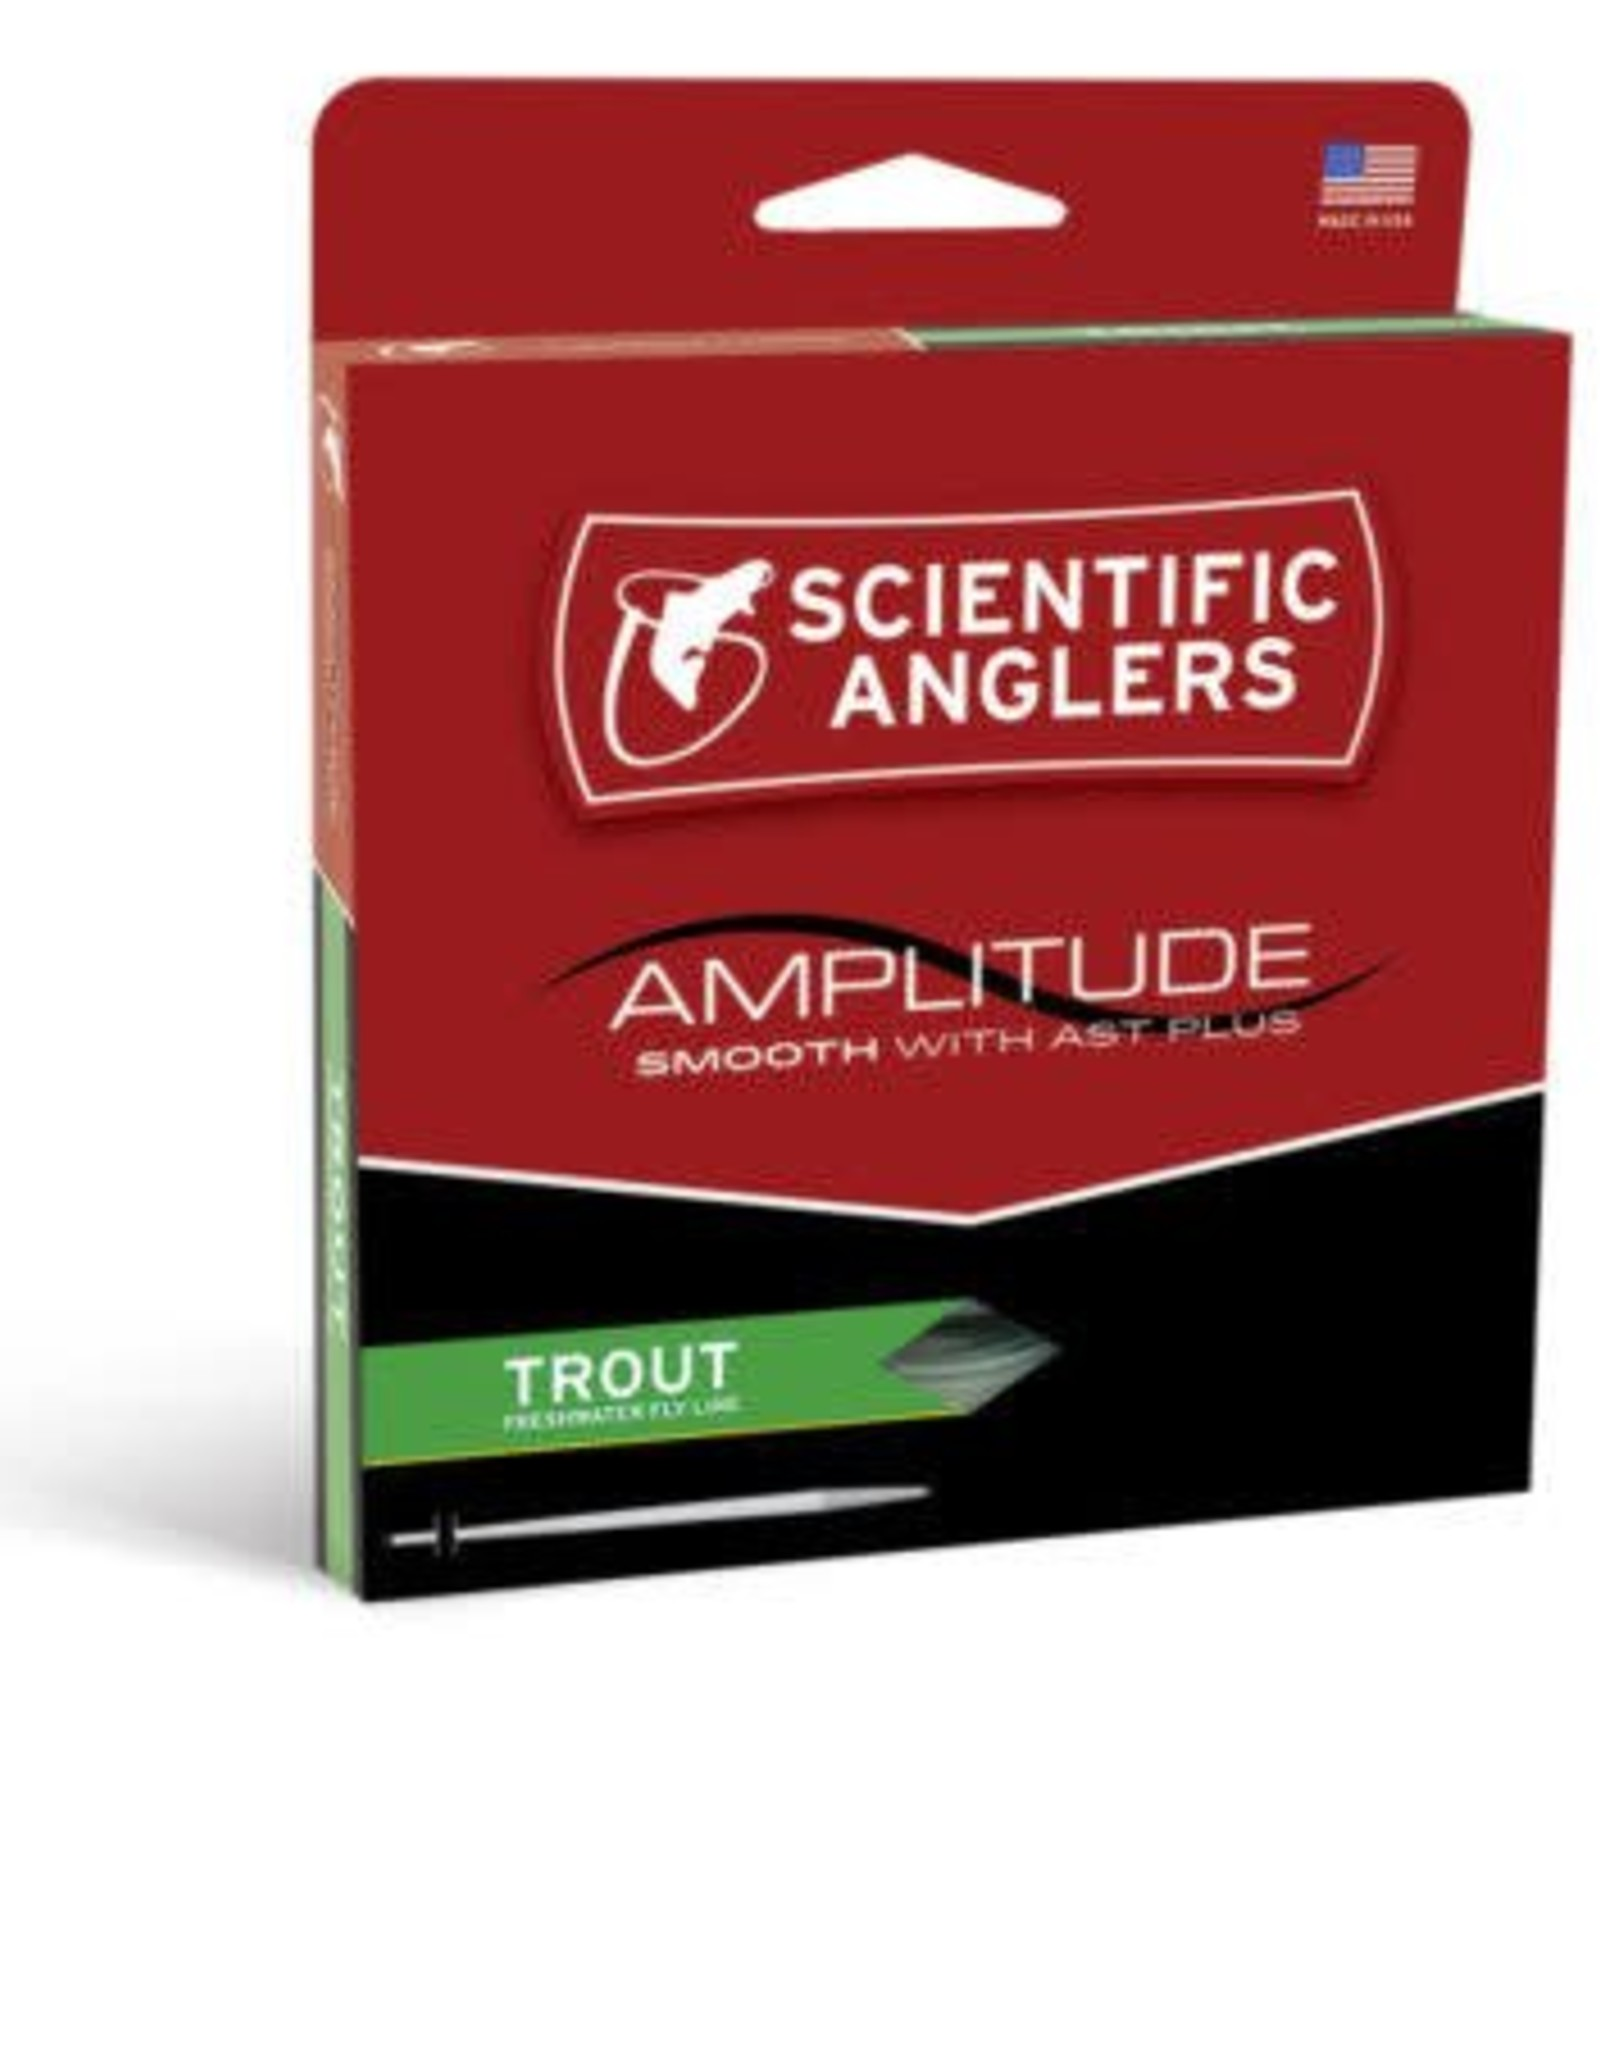 Scientific Anglers Scientific Anglers Amplitude Smooth Trout Taper